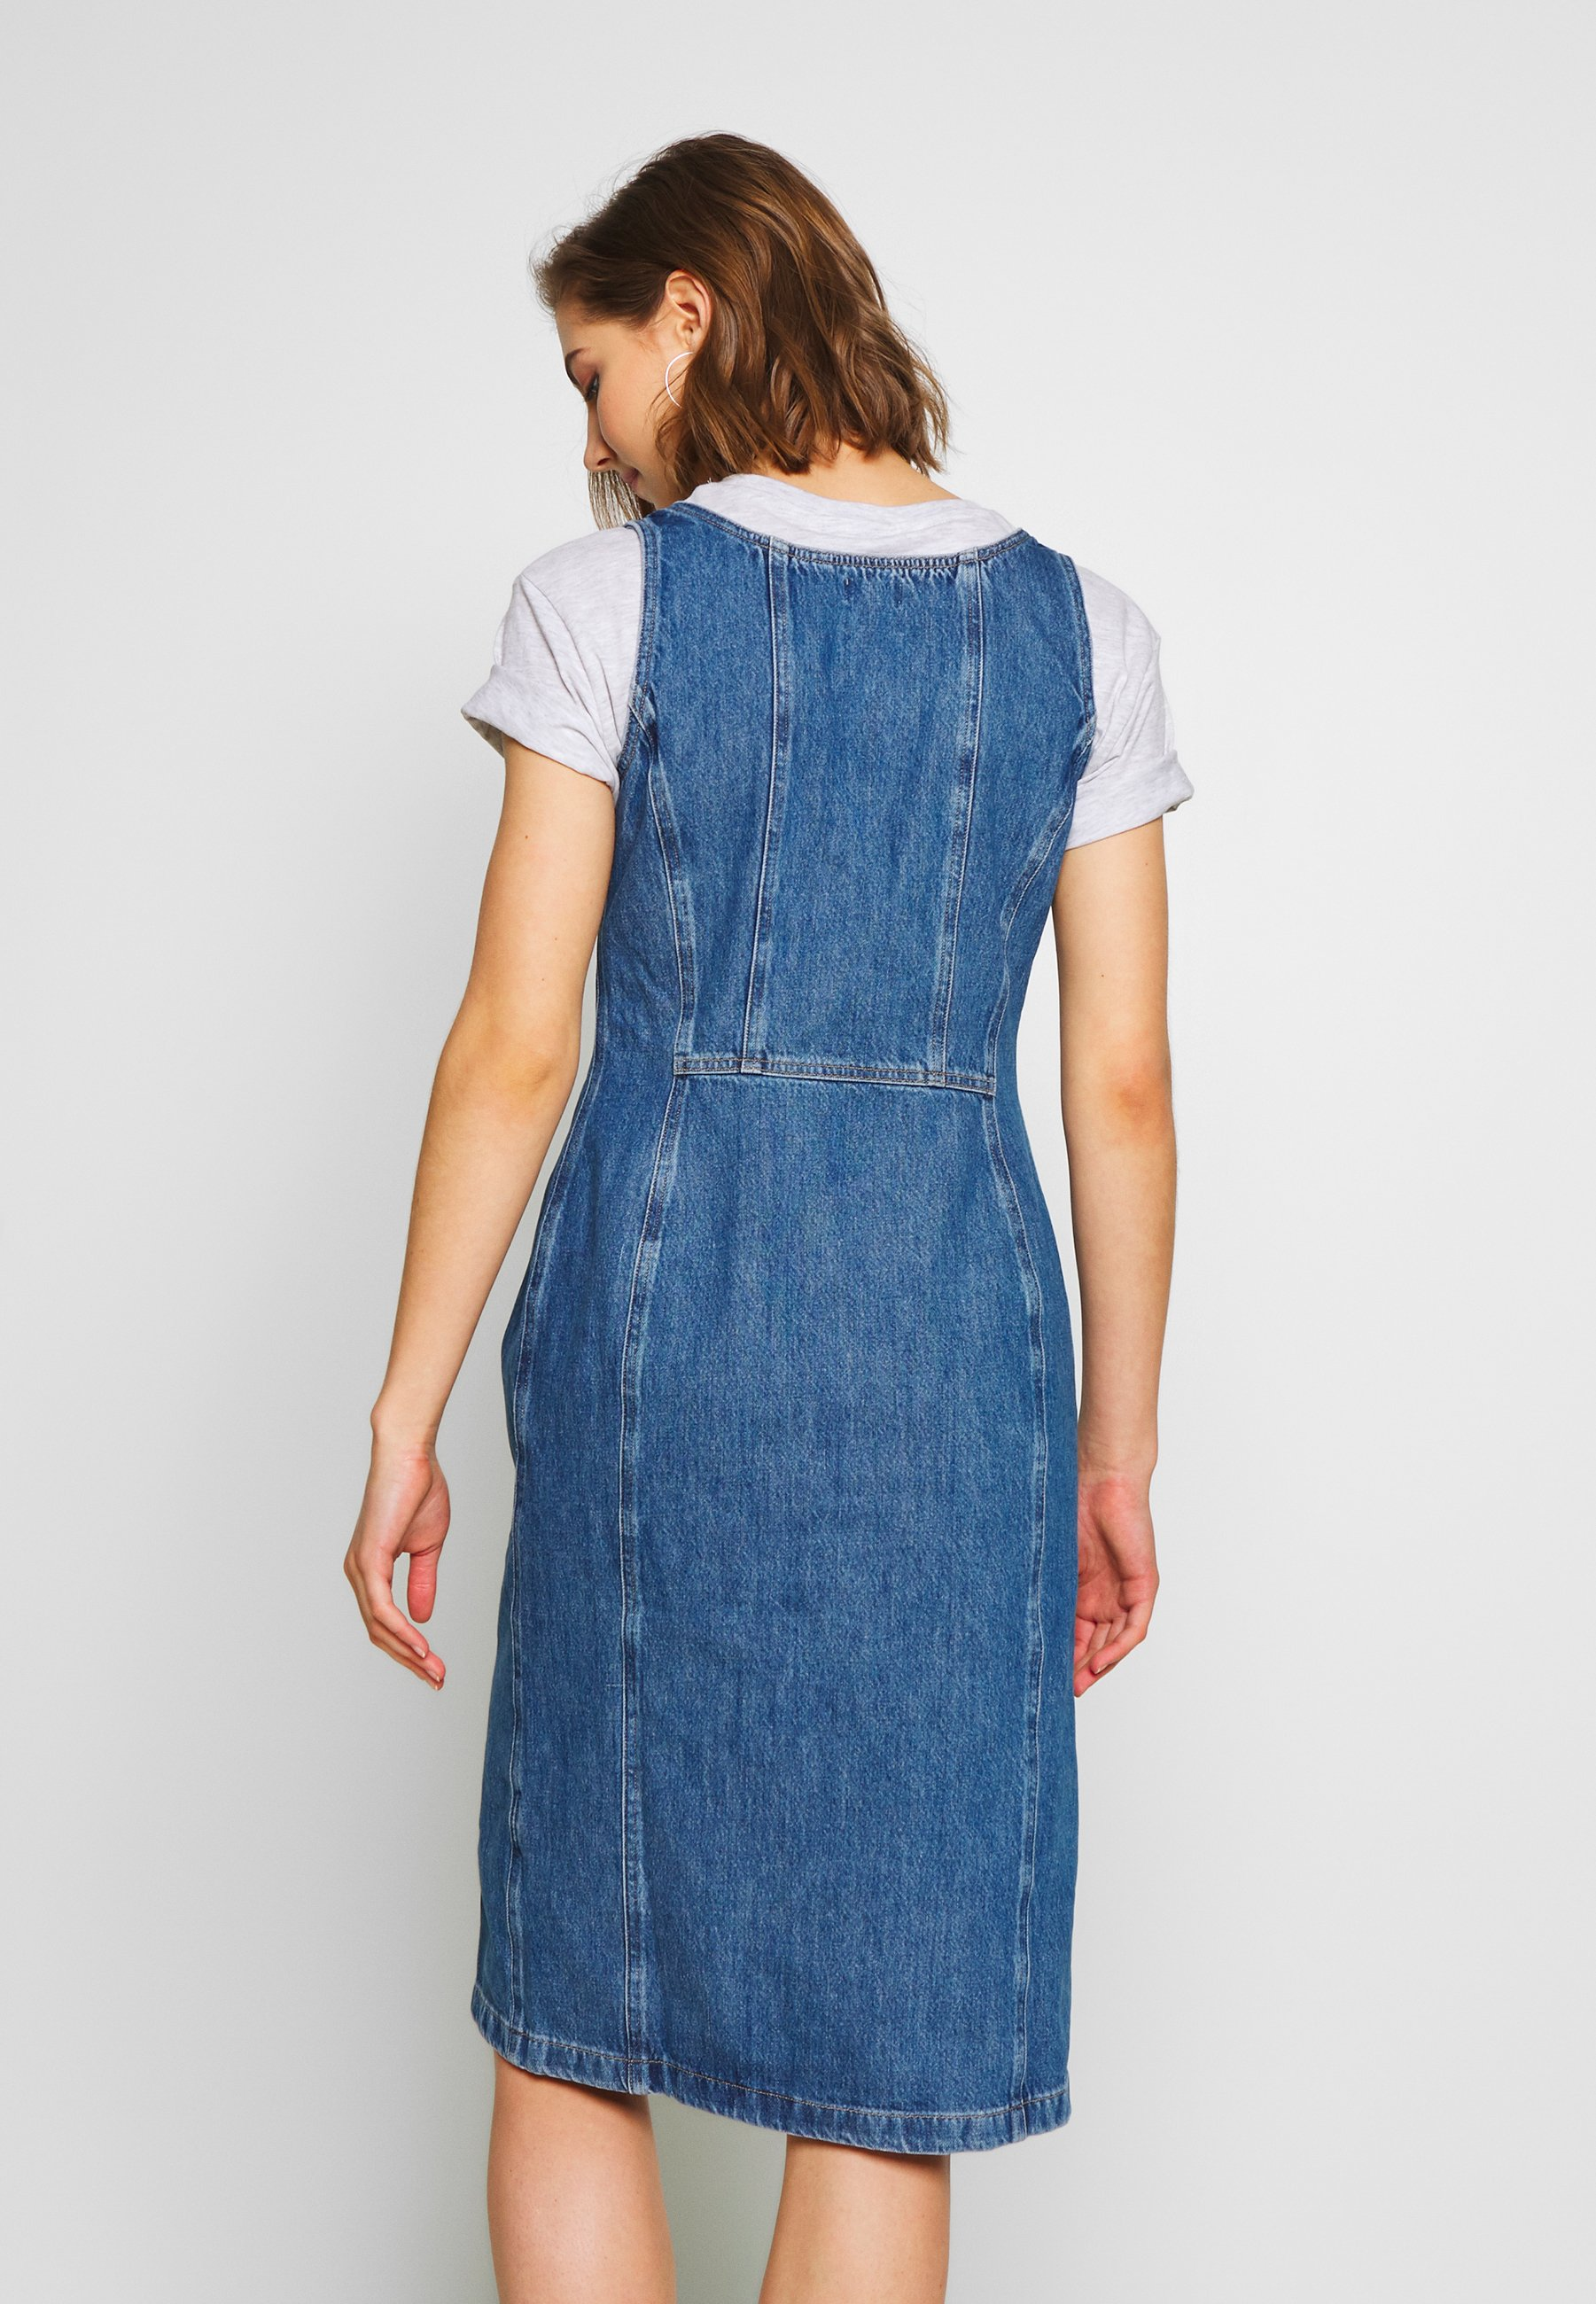 Levi's® SIENNA DRESS Farkkumekko out of the blue